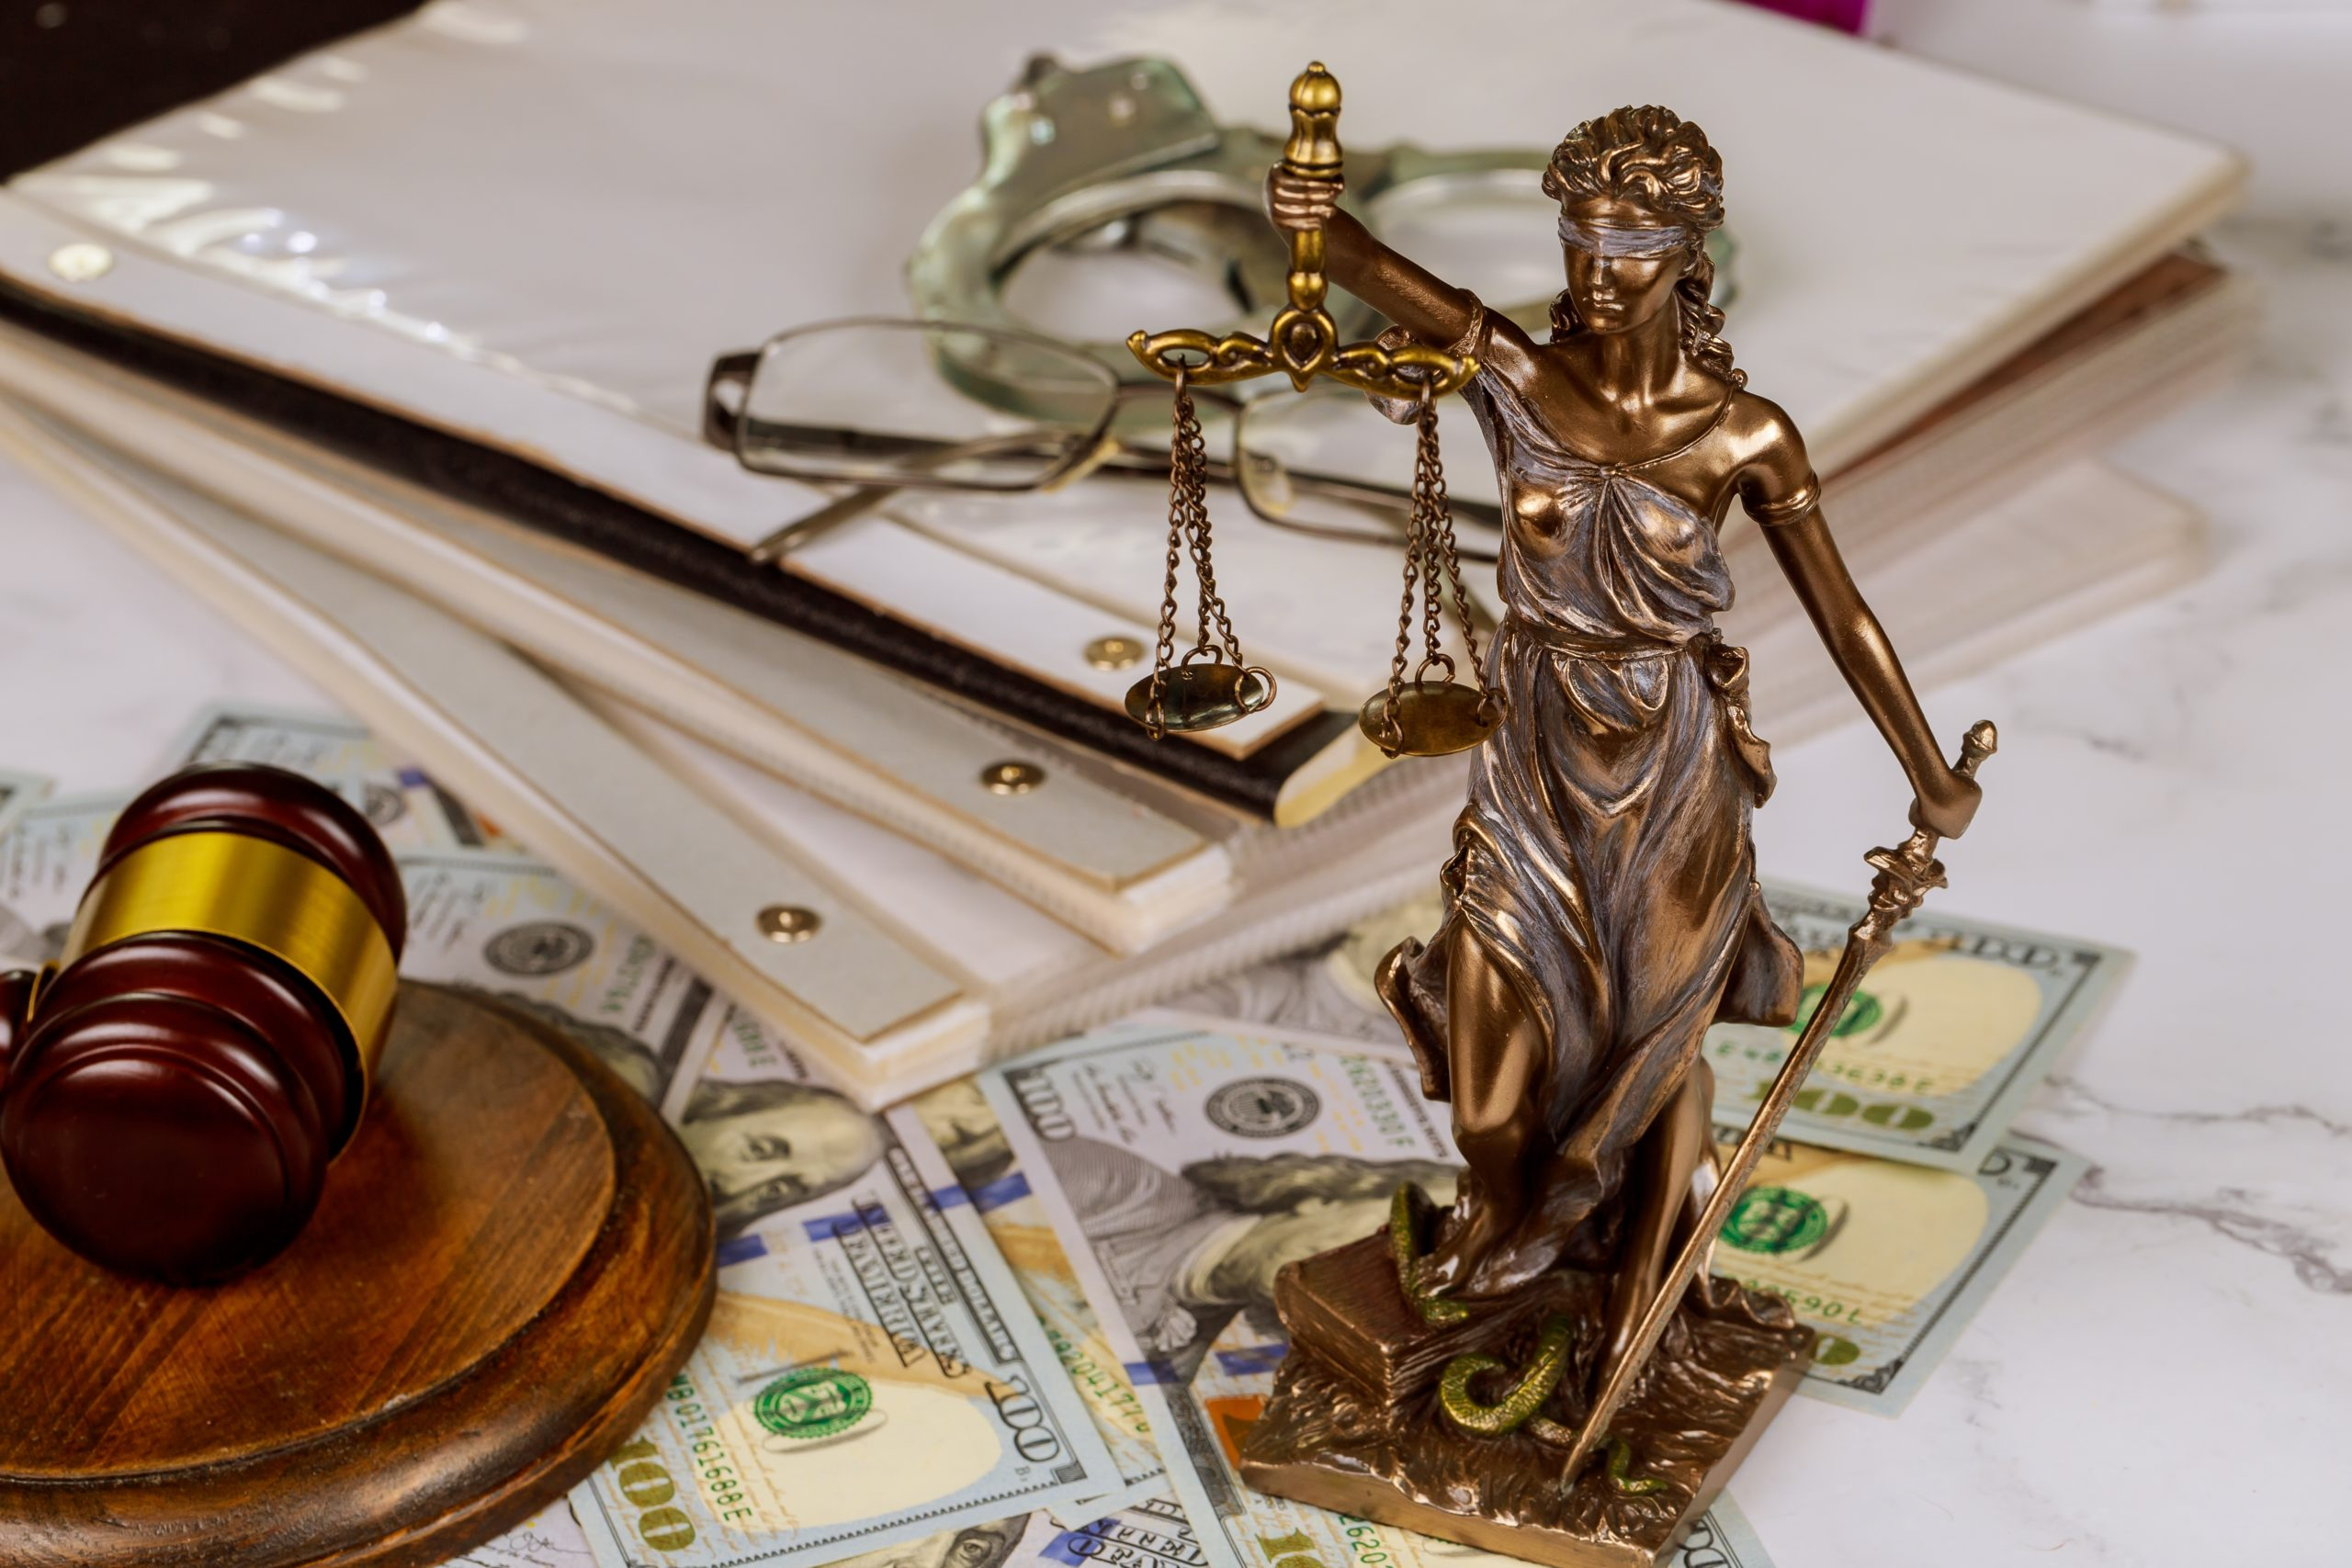 Learn more about contempt of court in family law.